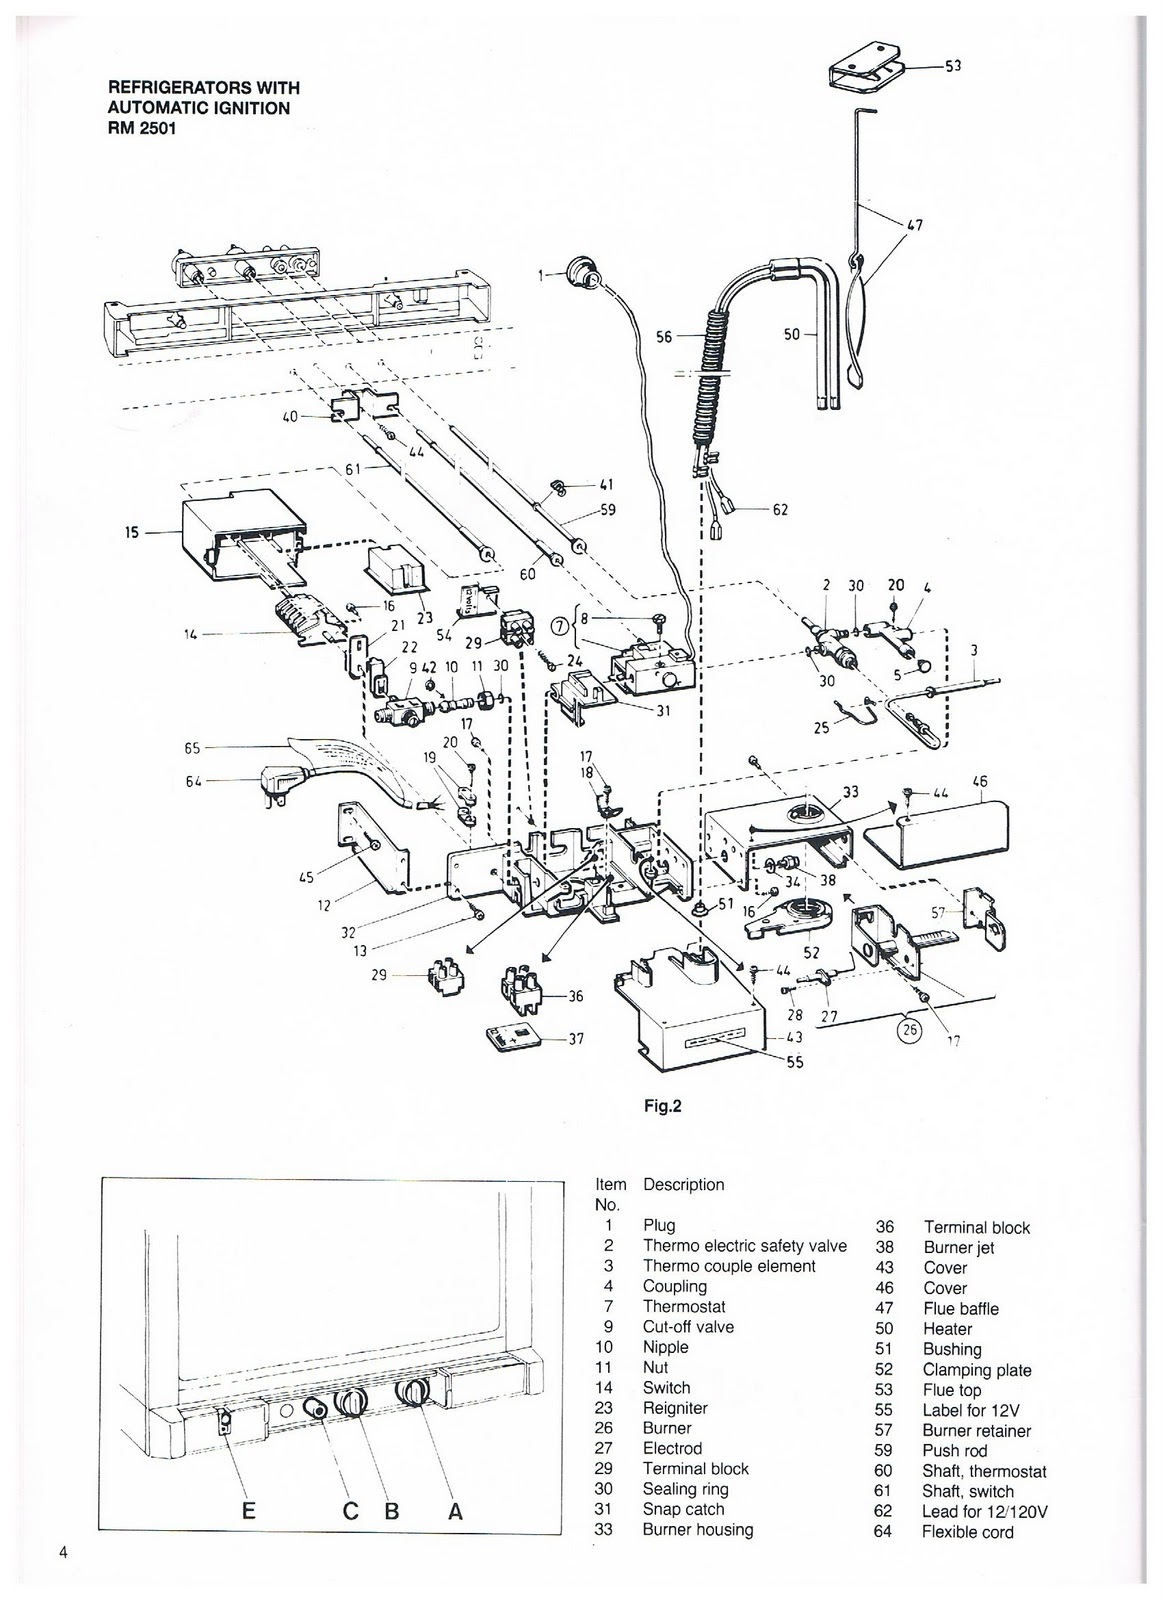 Fleetwood Rv Water Pump Wiring Diagram | Wiring Diagram - Shurflo Water Pump Wiring Diagram